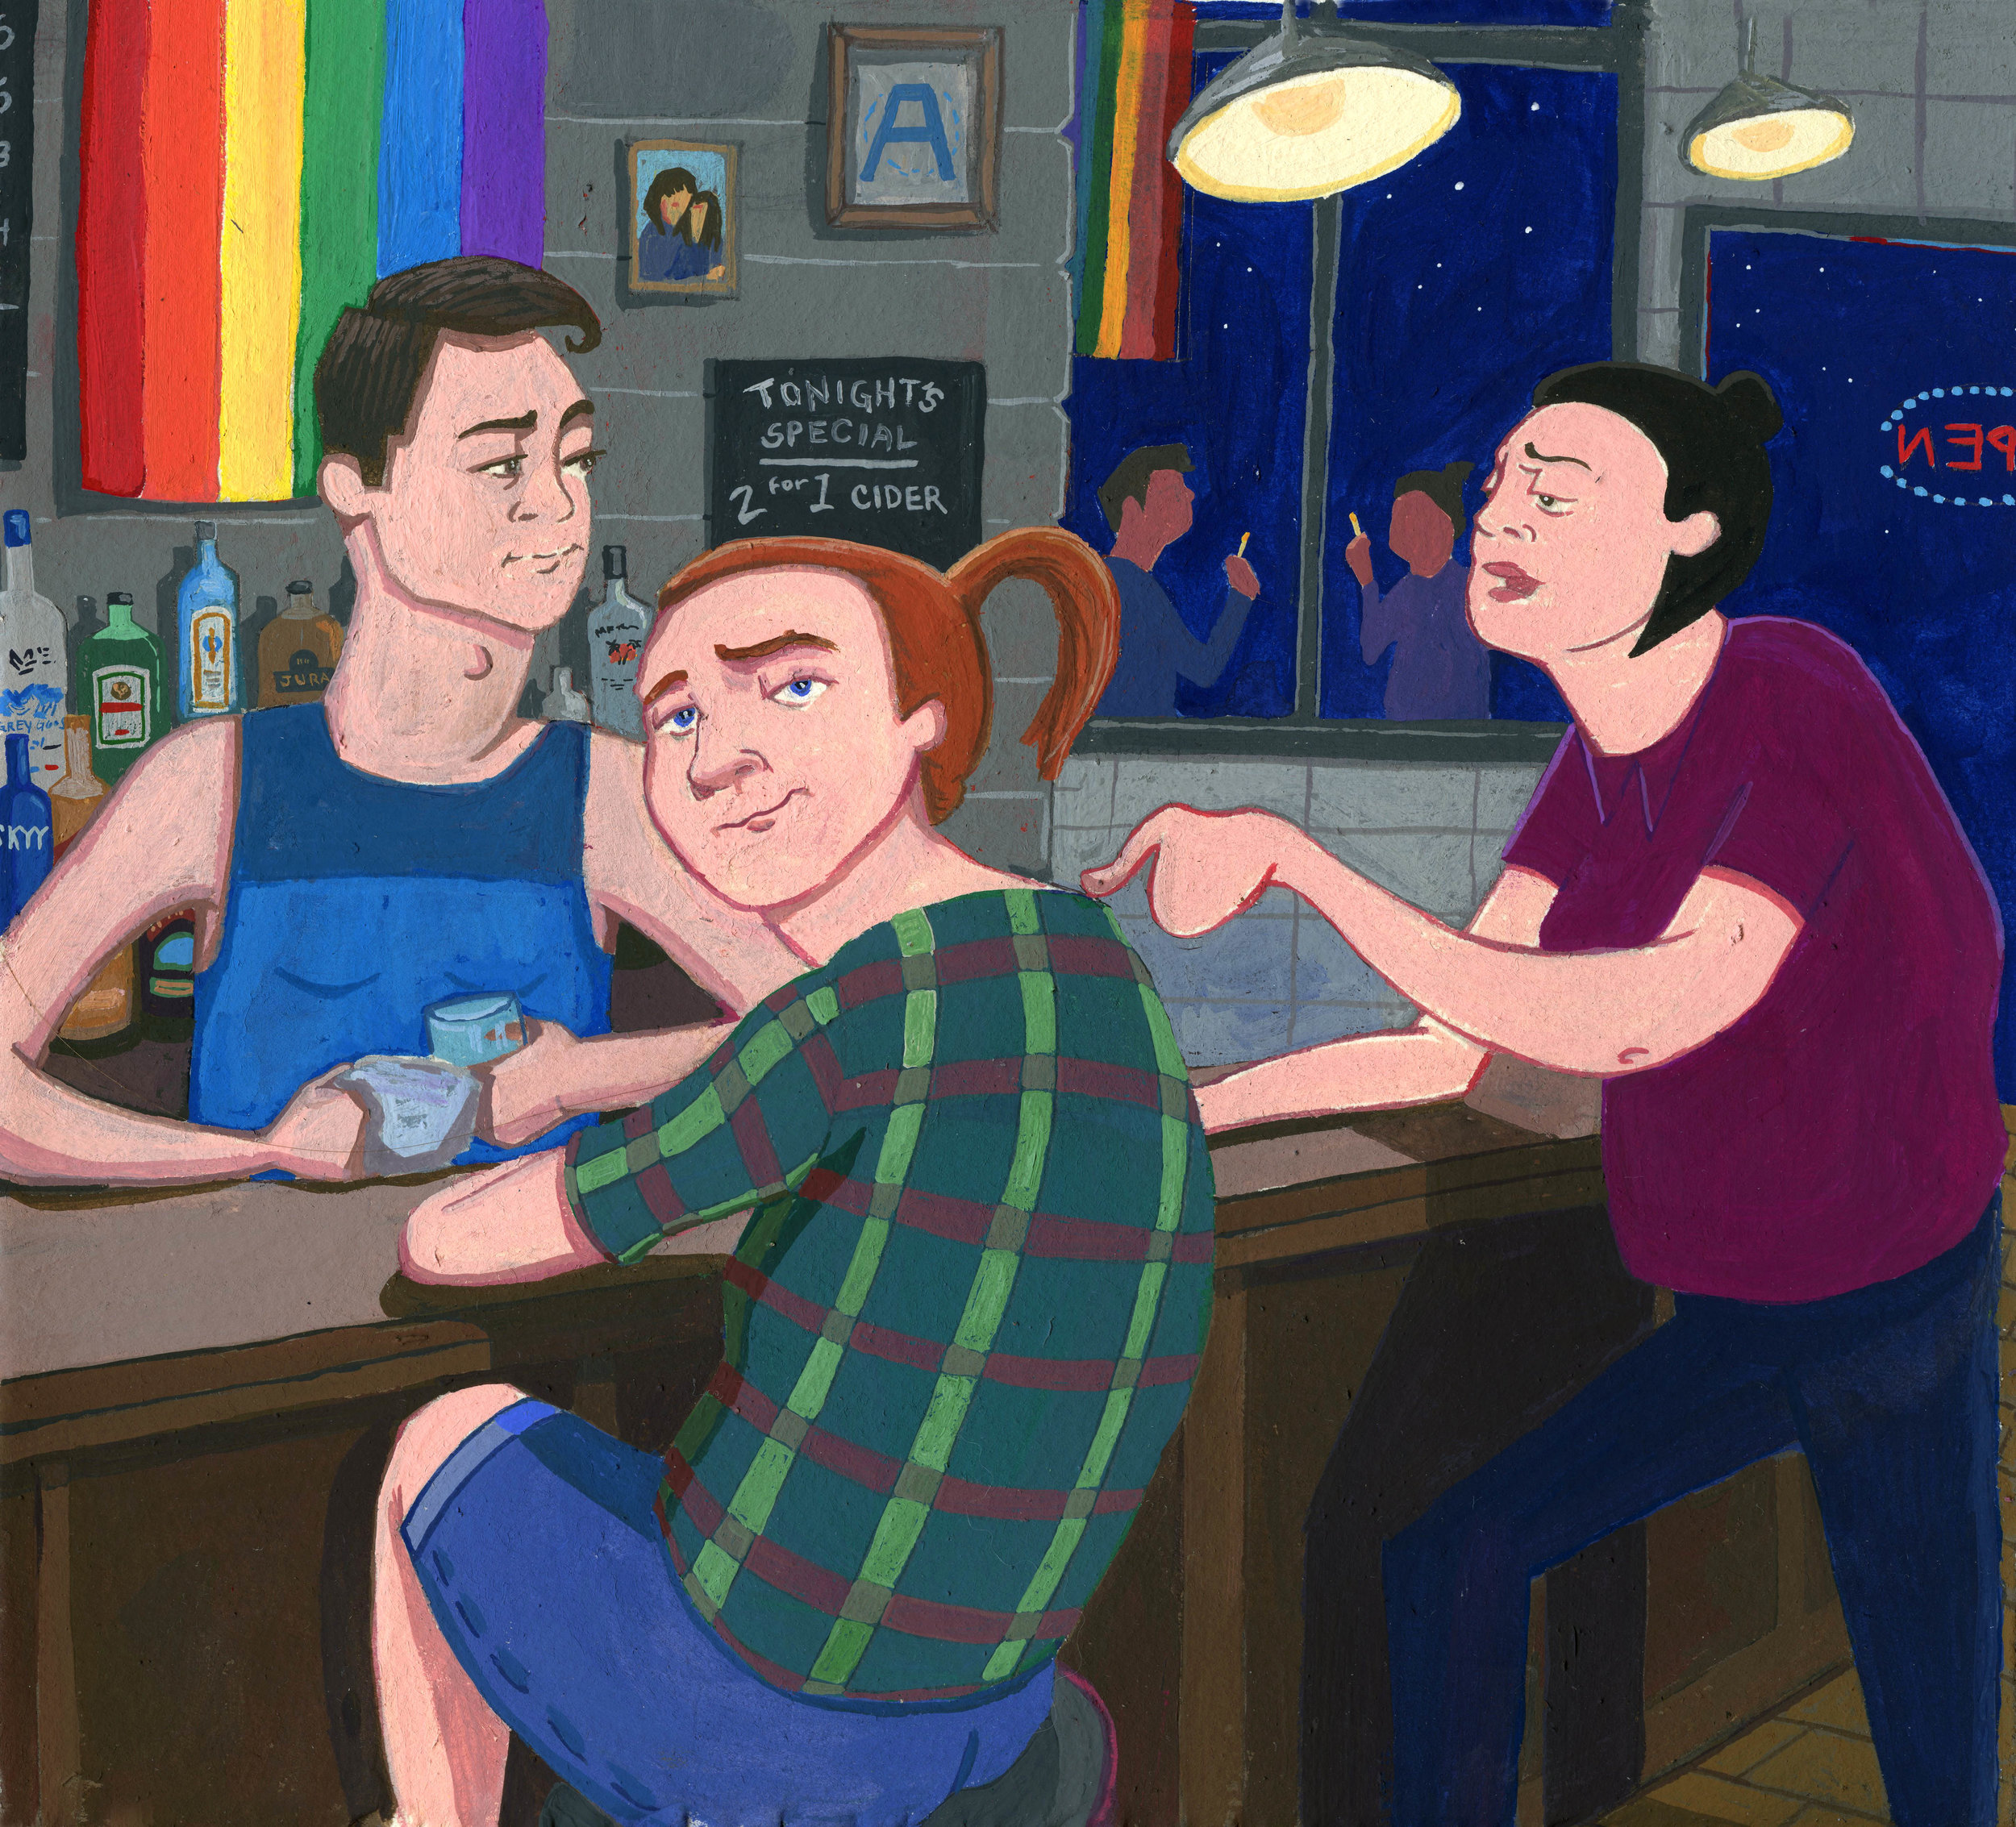 Scenes from your friendly neighborhood gay bar